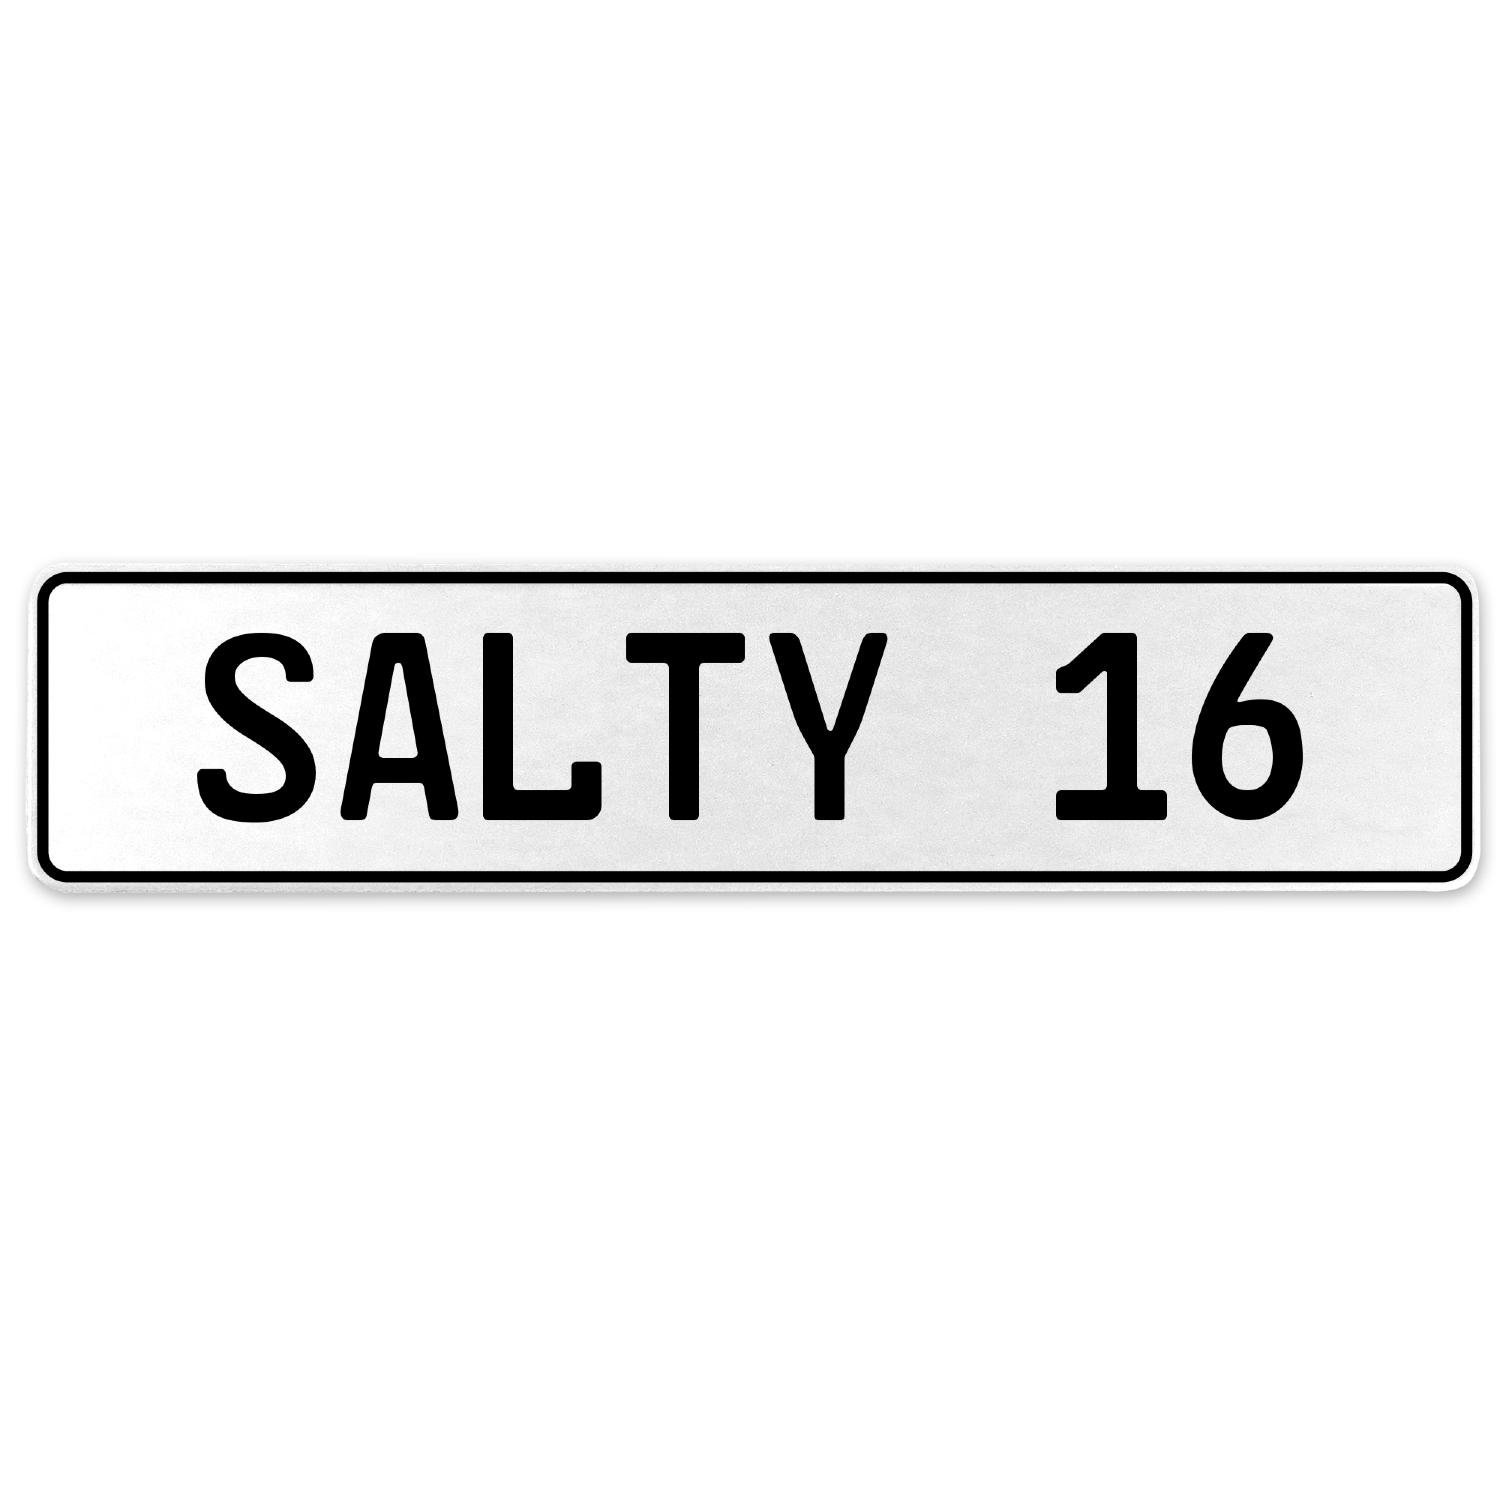 Vintage Parts 556692 Salty 16 White Stamped Aluminum European License Plate